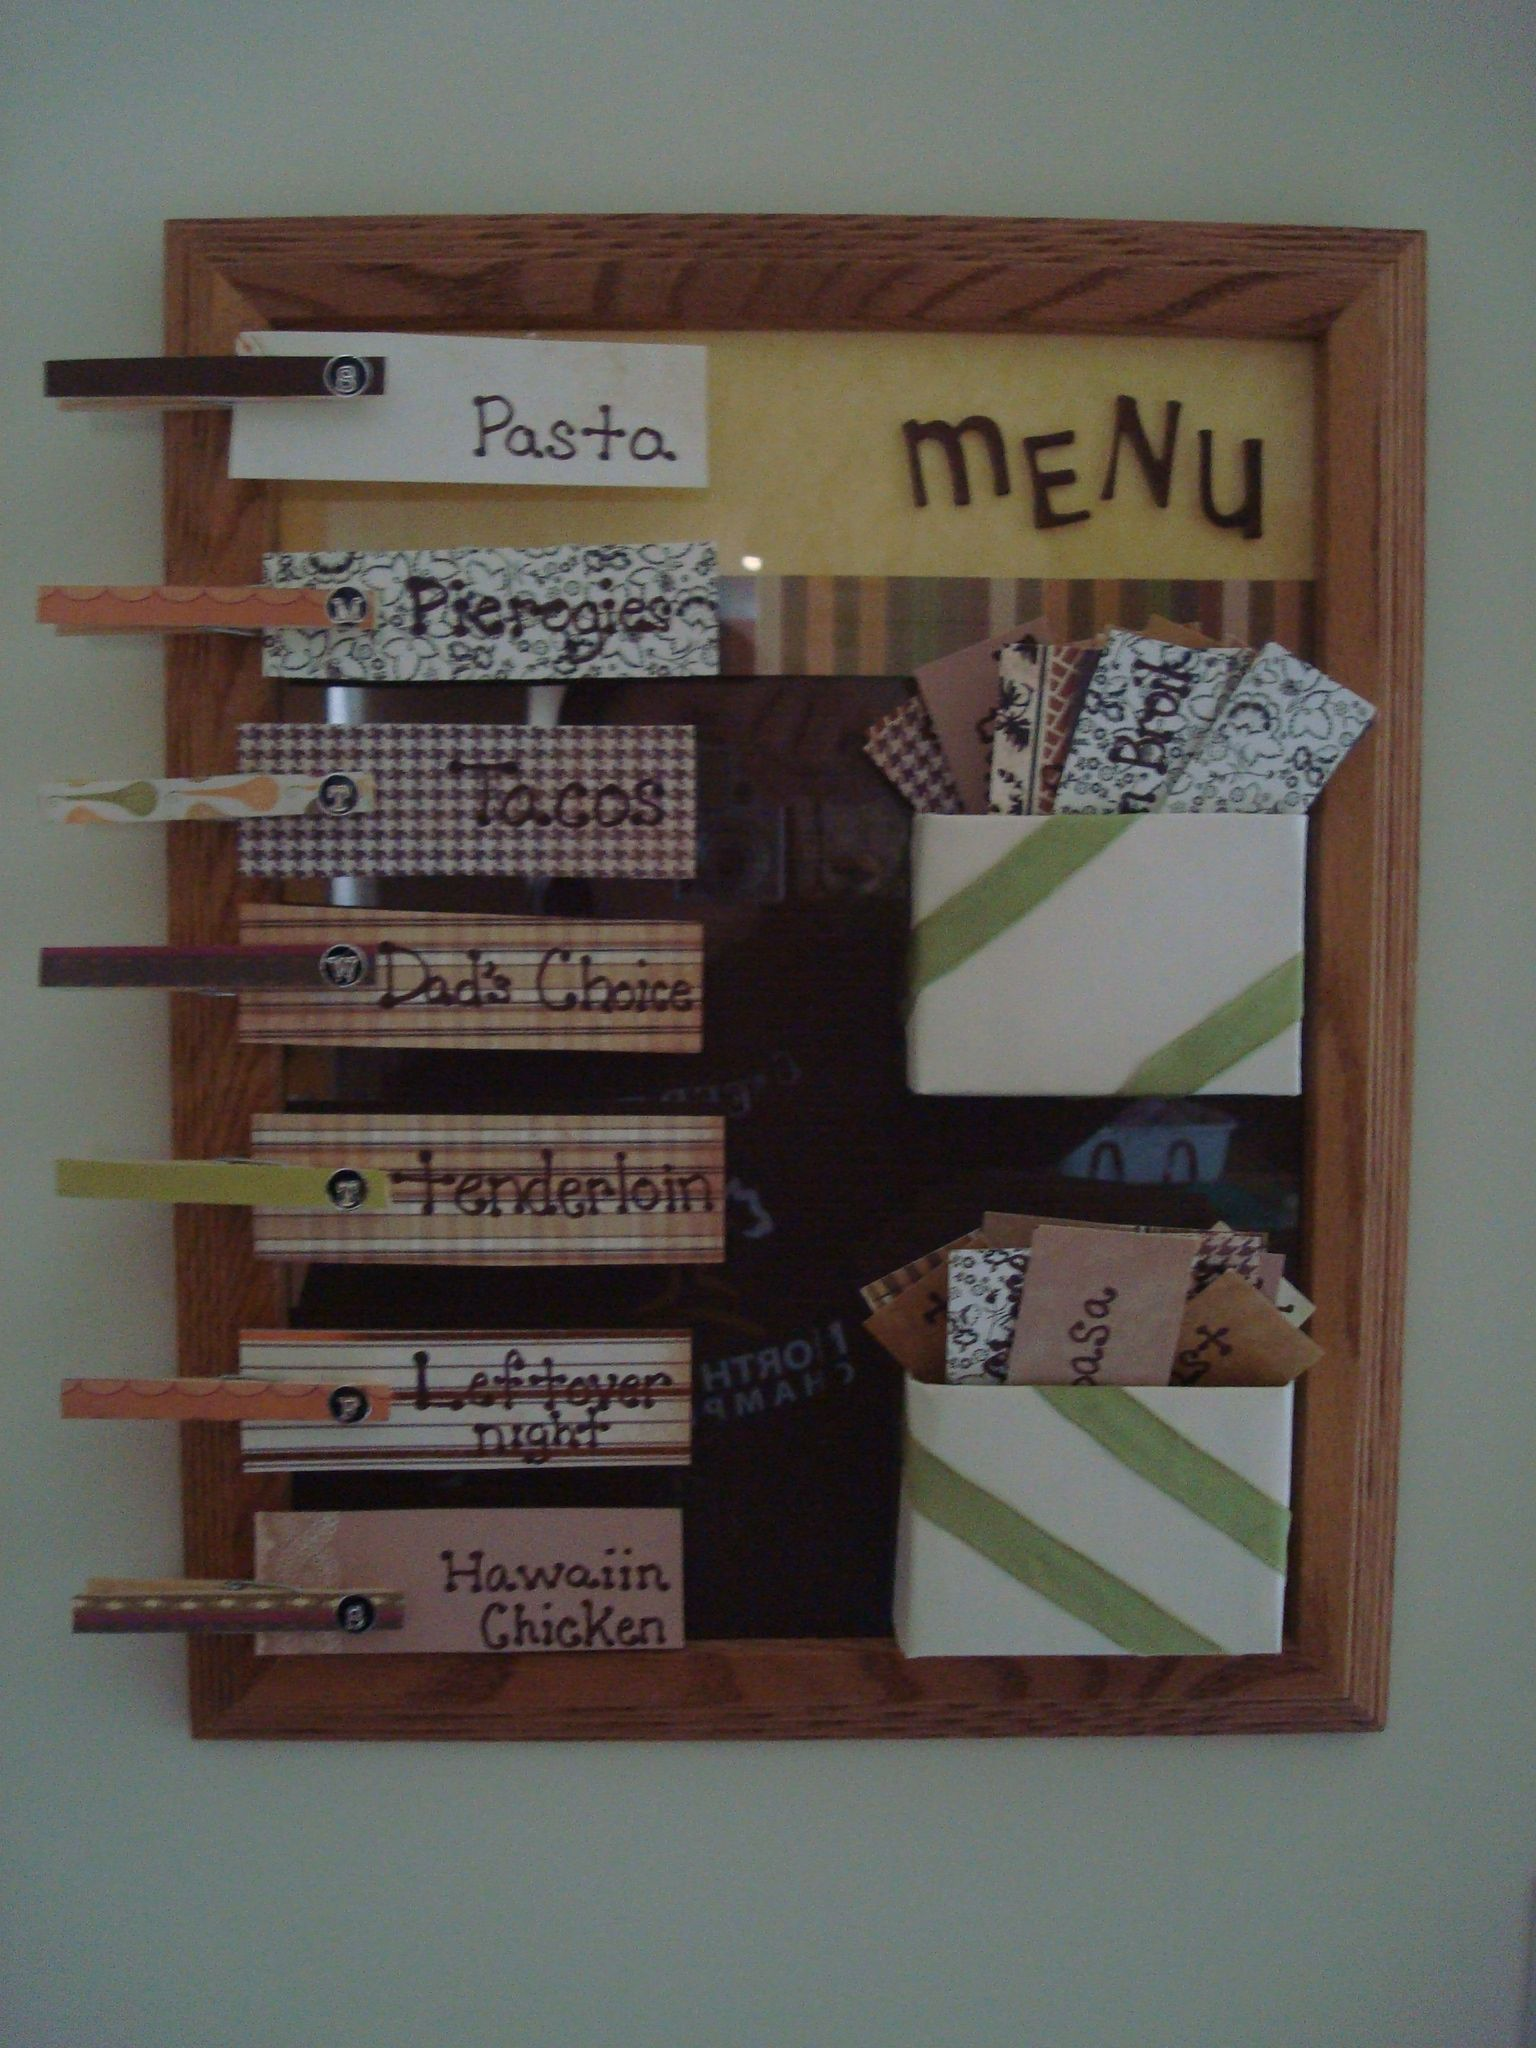 How to put scrapbook back together - Menu Board Decorated Scrapbook Paper Put Inside Frame Took Crayon Box Opened